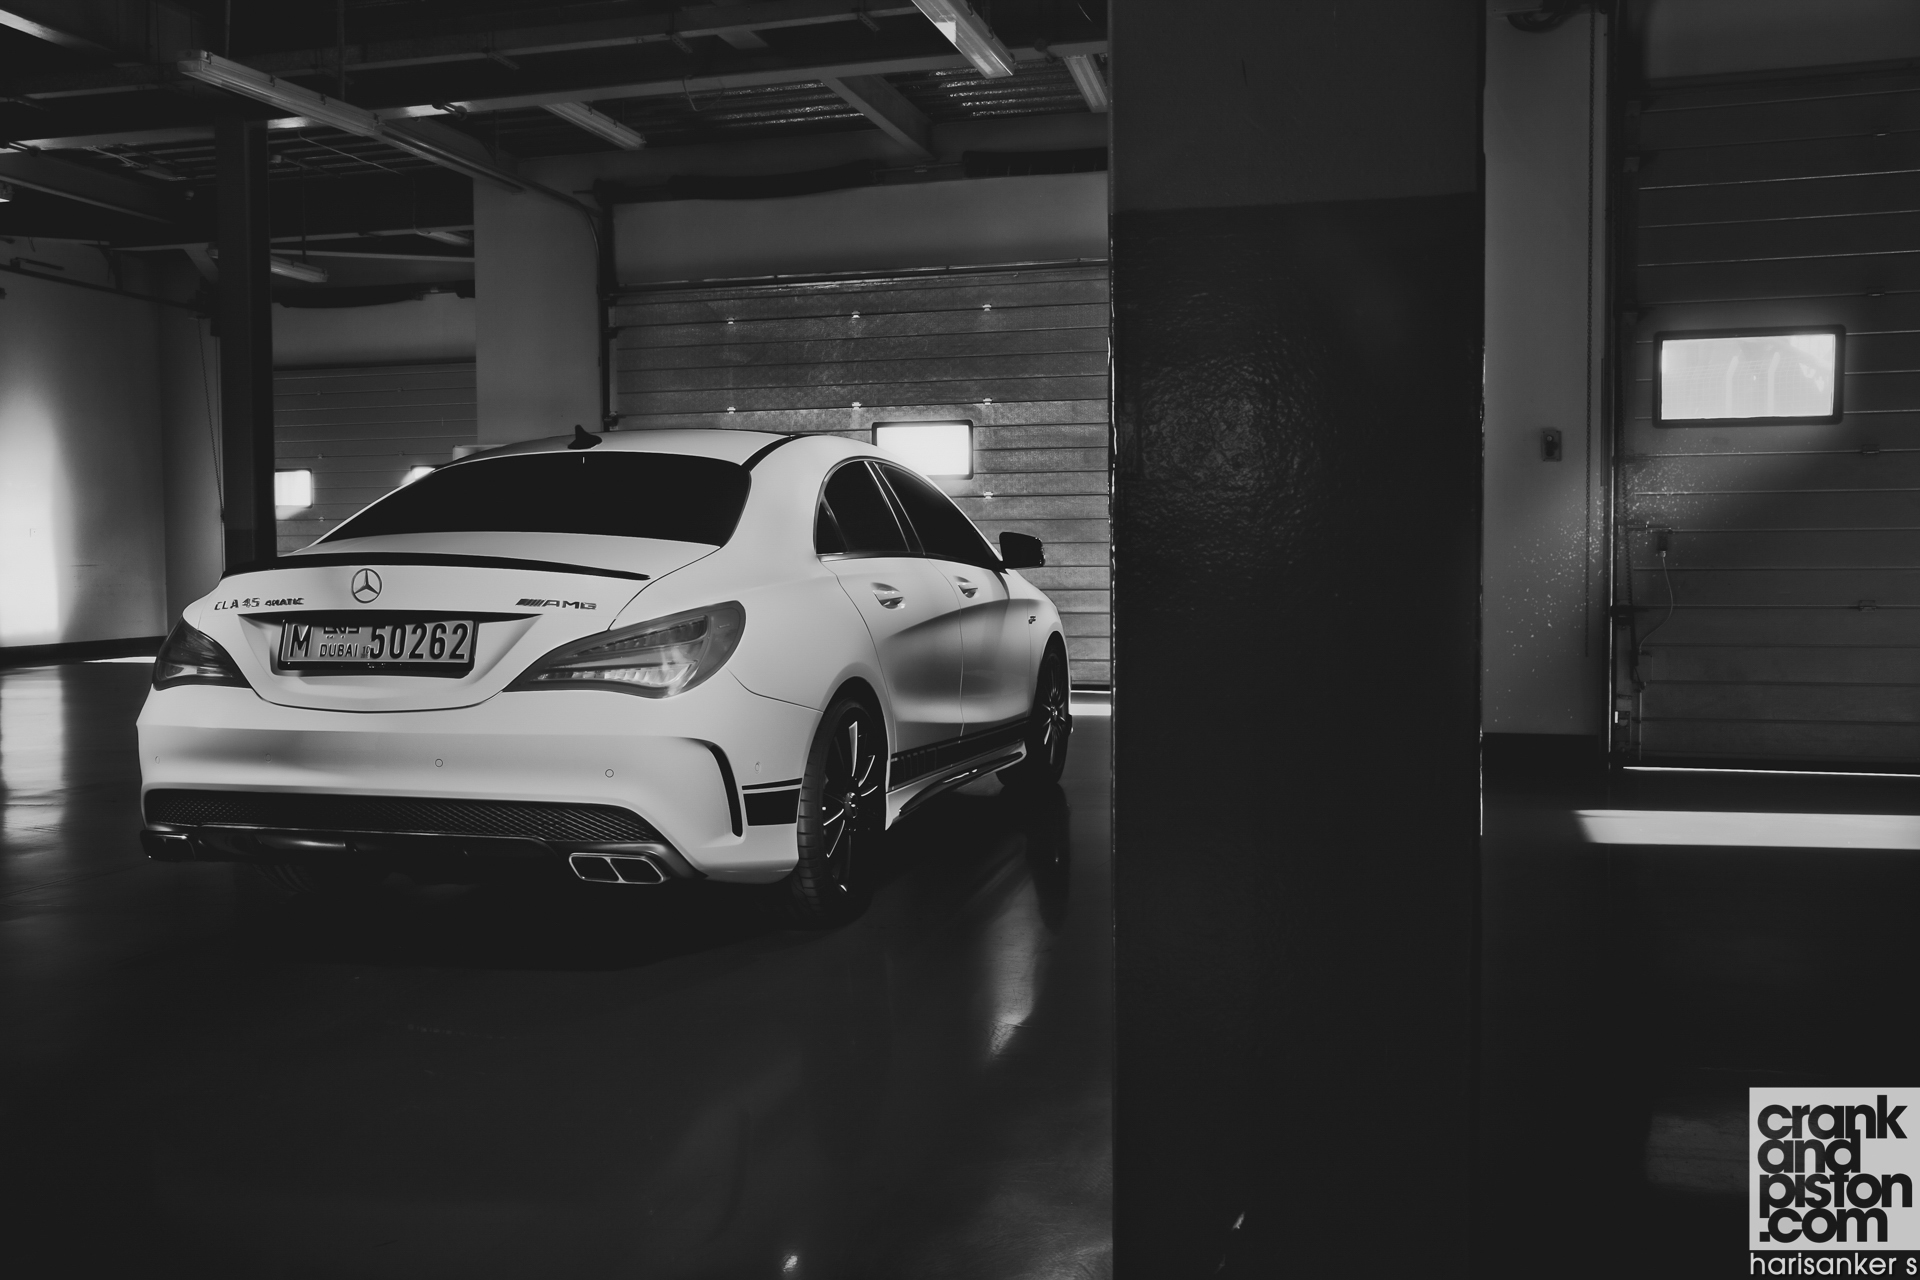 Mercedes Benz CLA 45 AMG crankandpiston wallpapers 03 1920x1280